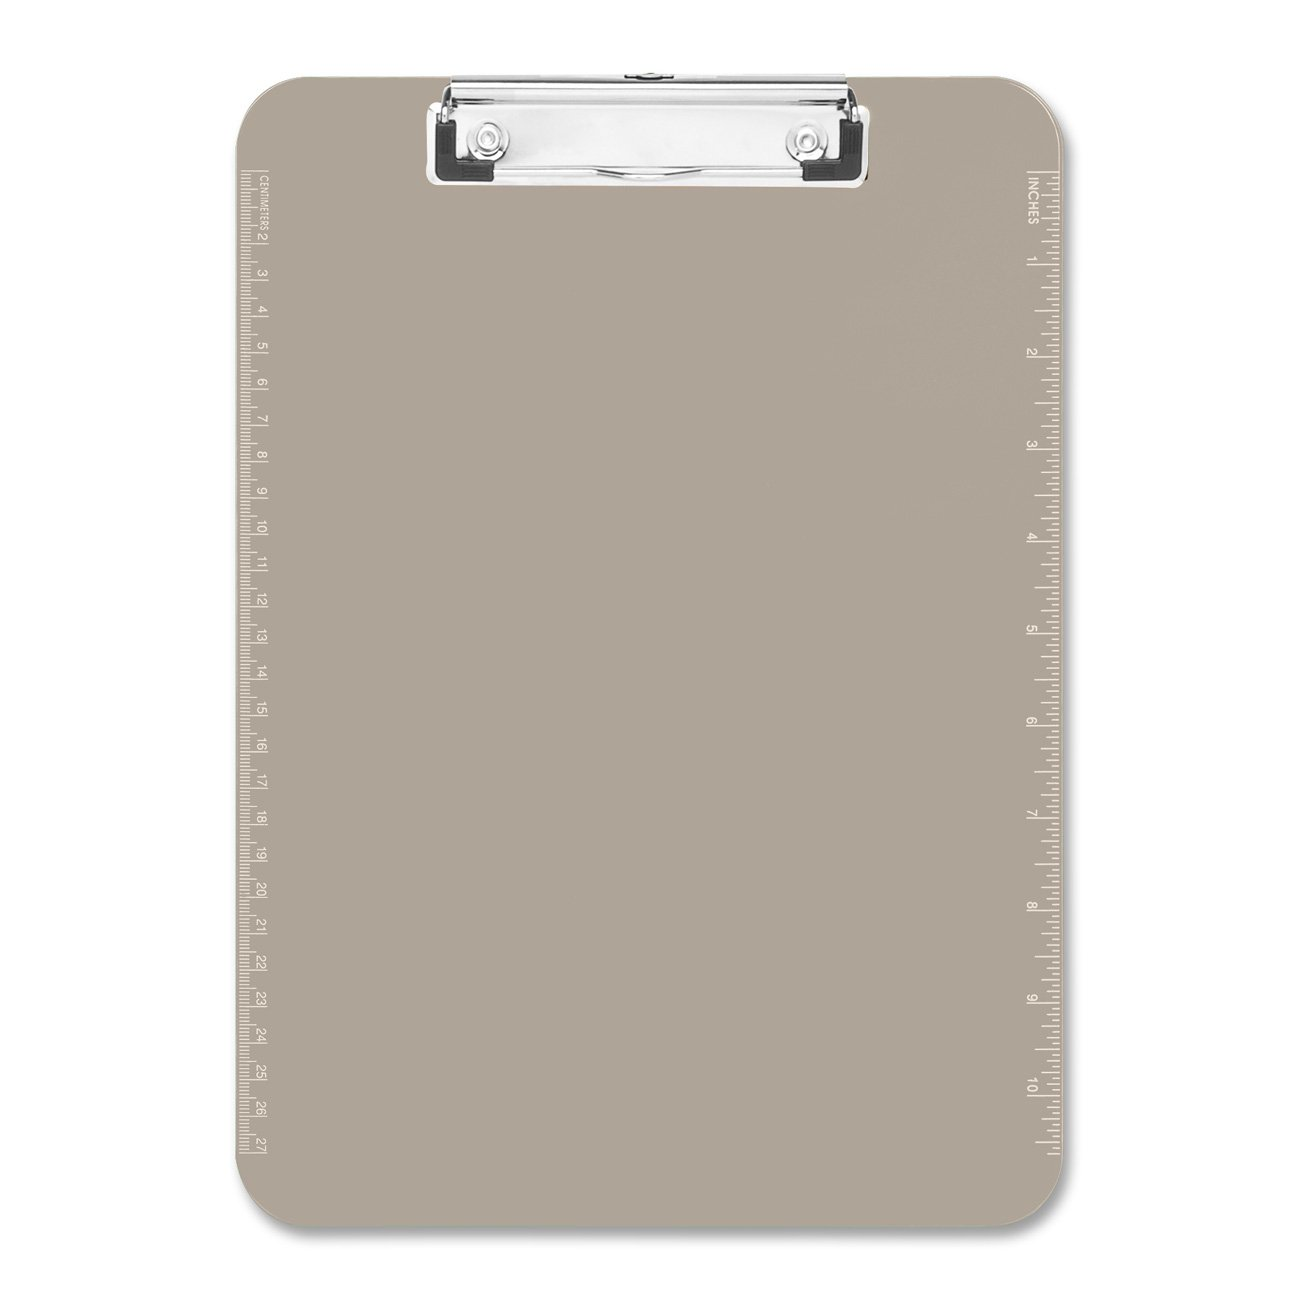 Sparco Plastic Clipboard, with Flat Clip, 9 x 12 Inches, Smoke (SPR01870) S.P. Richards Company